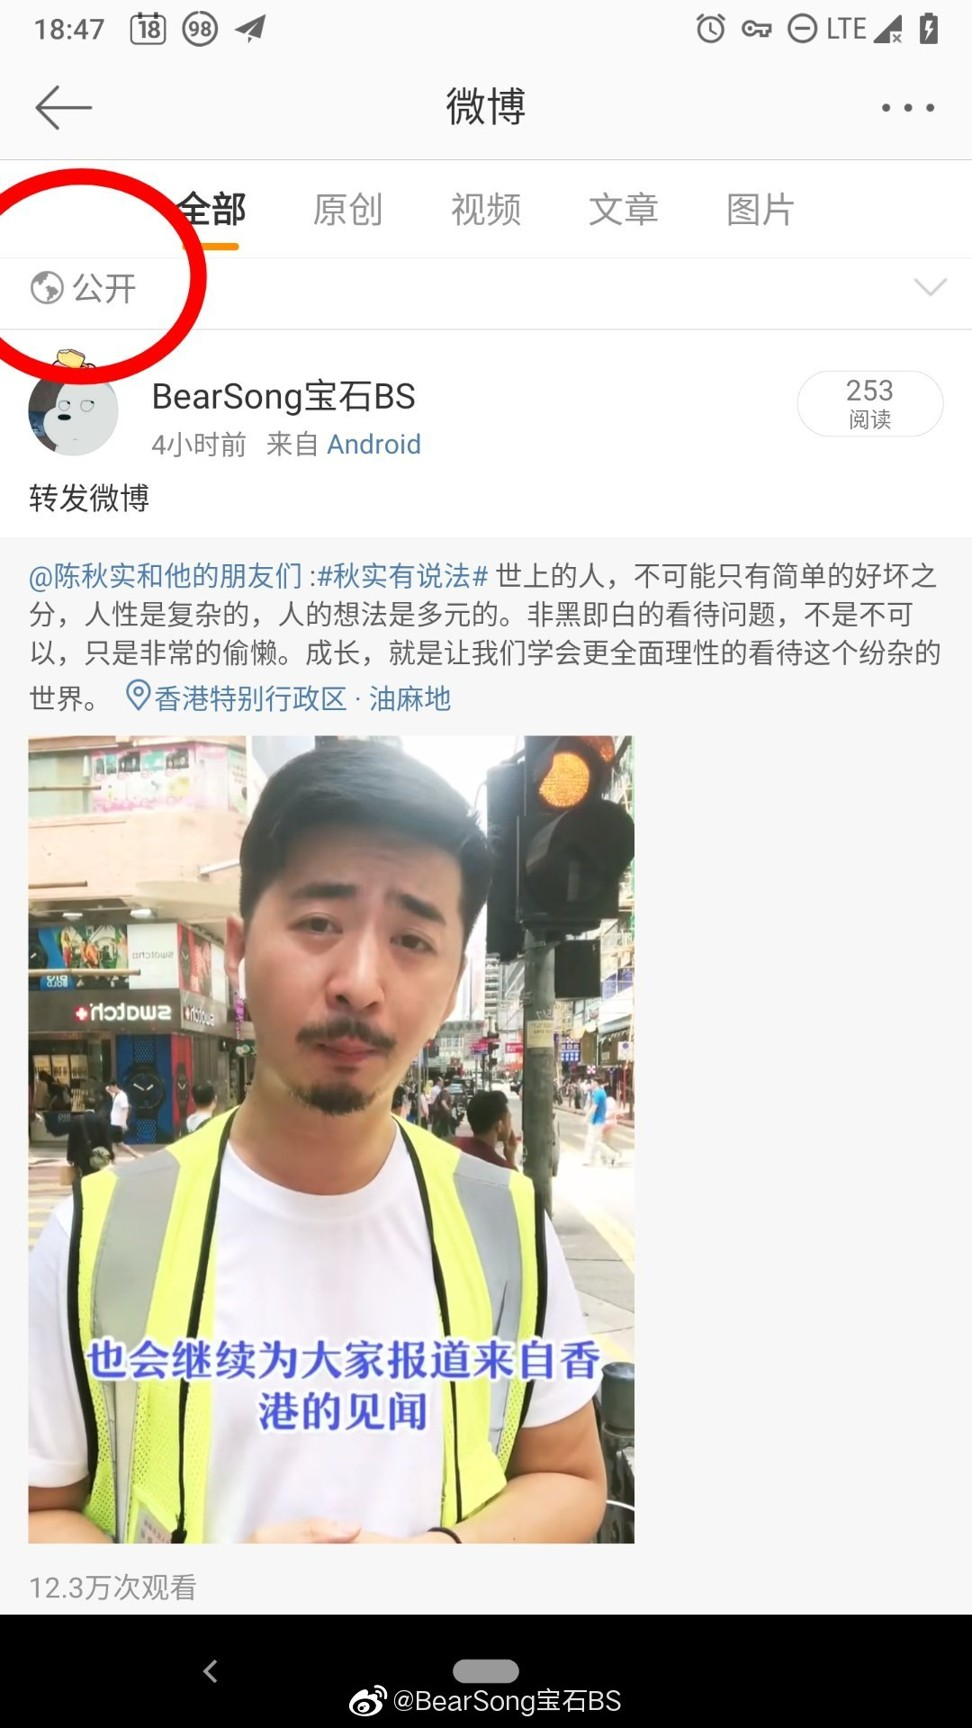 Xu Xiaodong has Weibo account wiped after Hong Kong protest comments; meets human rights lawyer Chen Qiushi